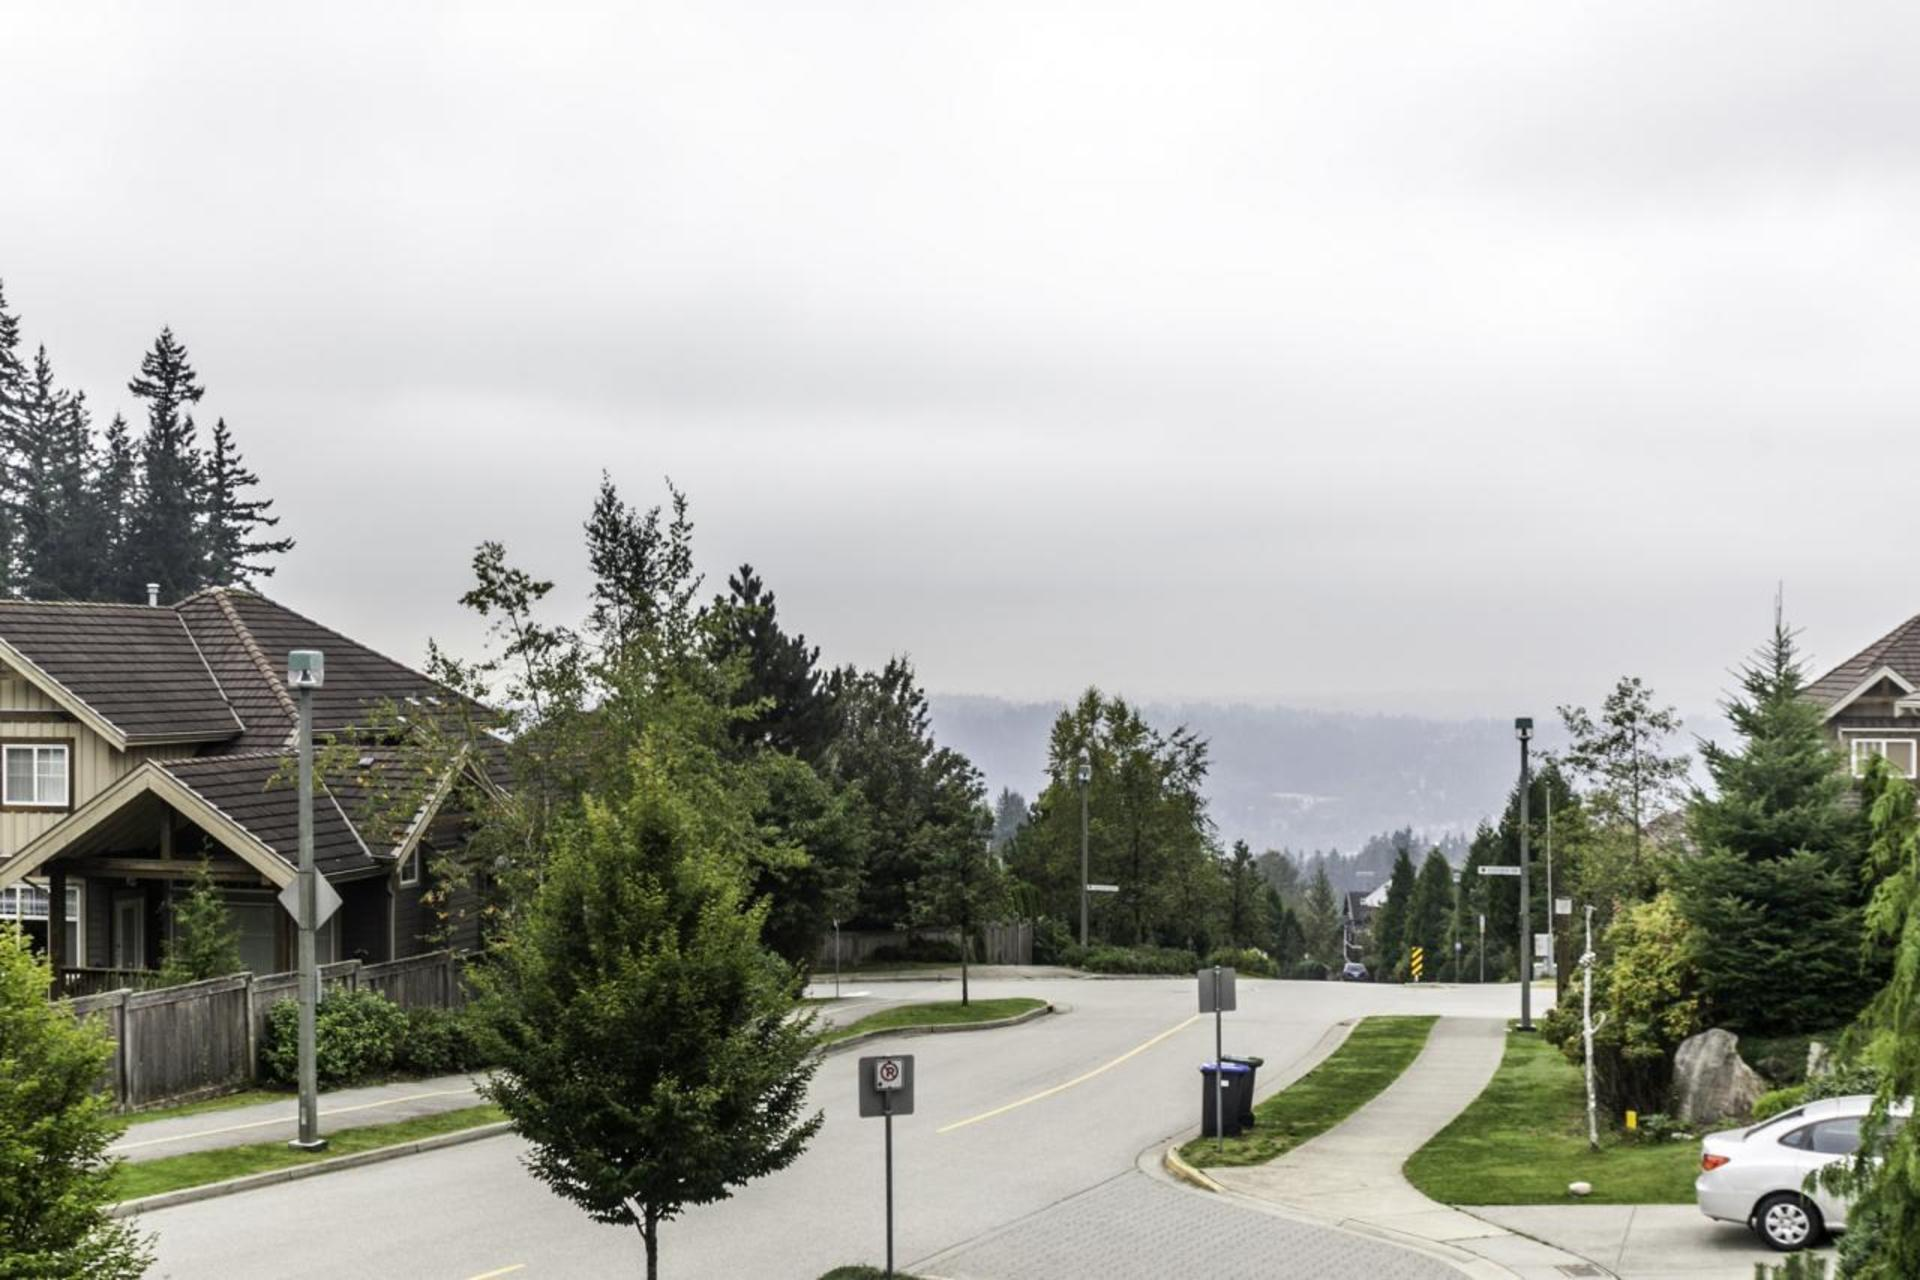 21-1 at 109 Forest Park Way, Heritage Woods PM, Port Moody